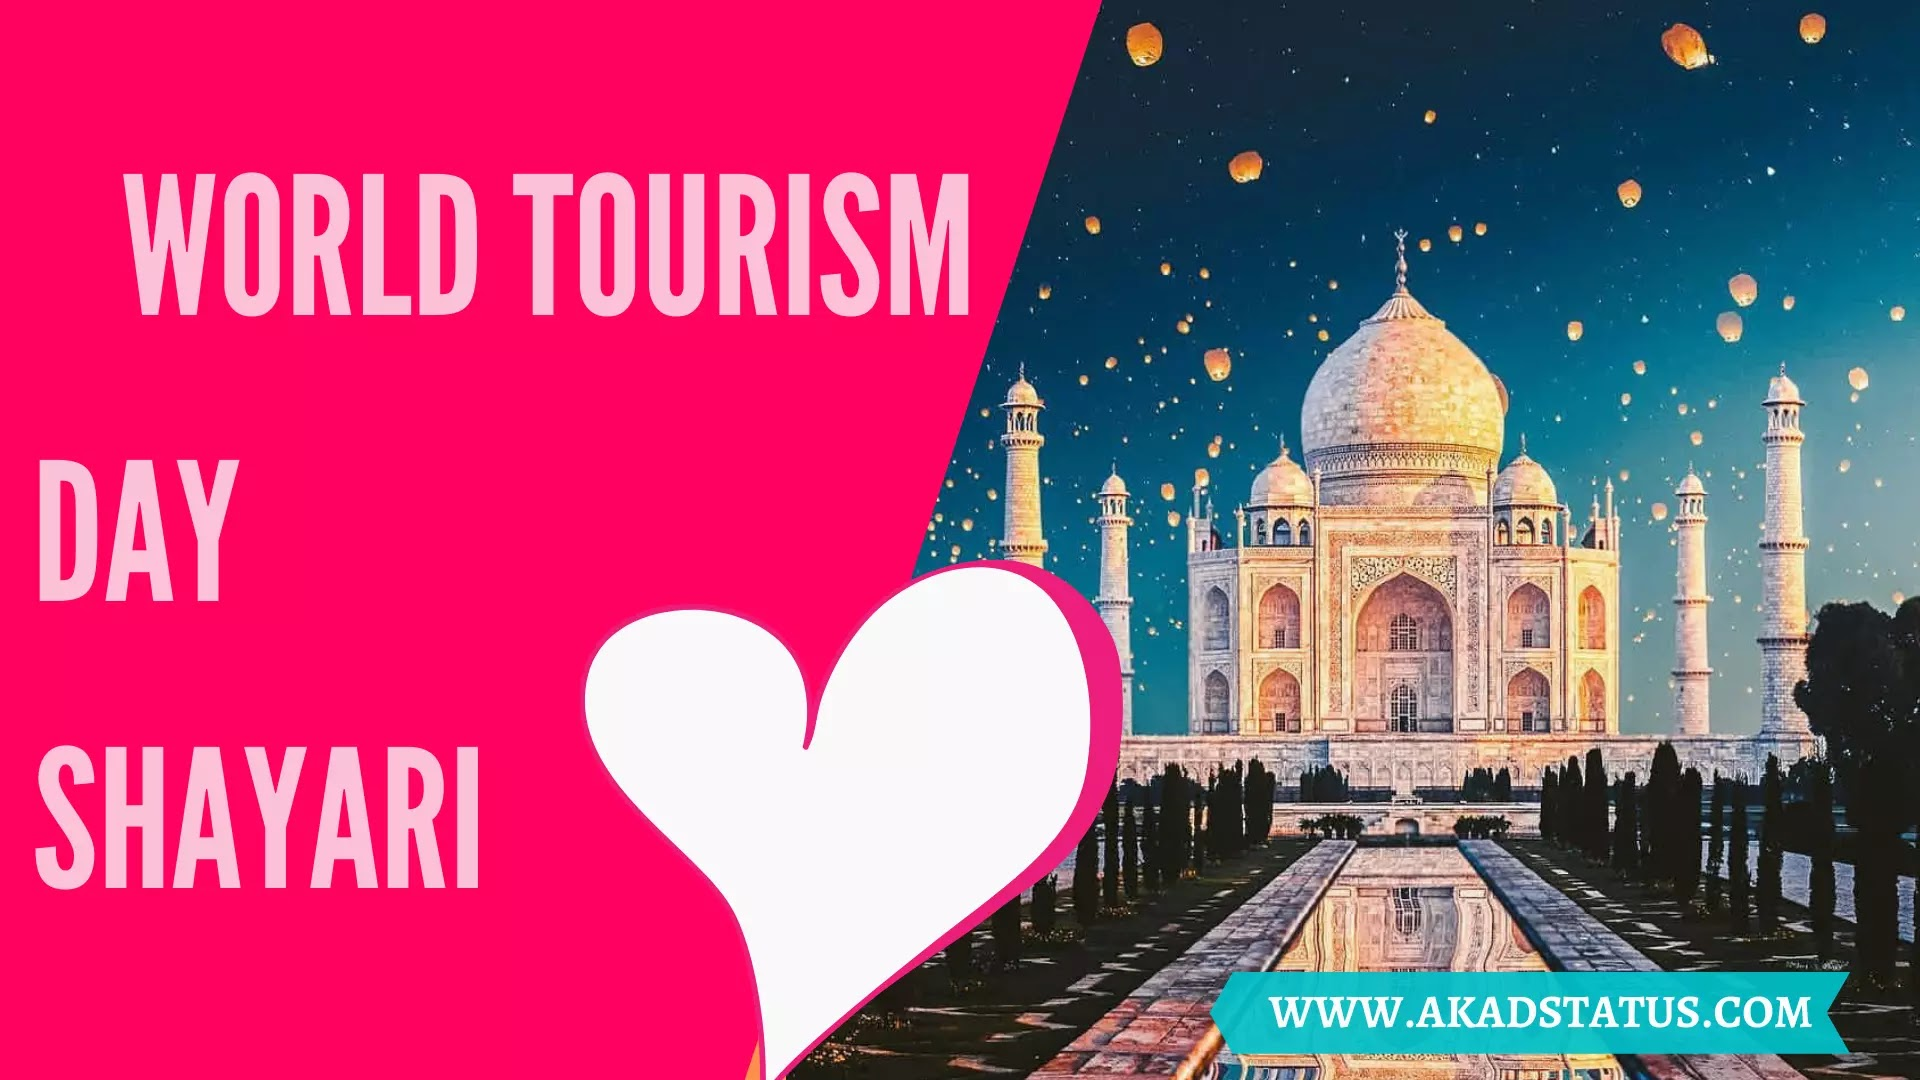 World Tourism Day Quotes in Hindi, World Tourism Day Status in Hindi, World Tourism Day Shayari in Hindi, World Tourism Day Wishes in Hindi